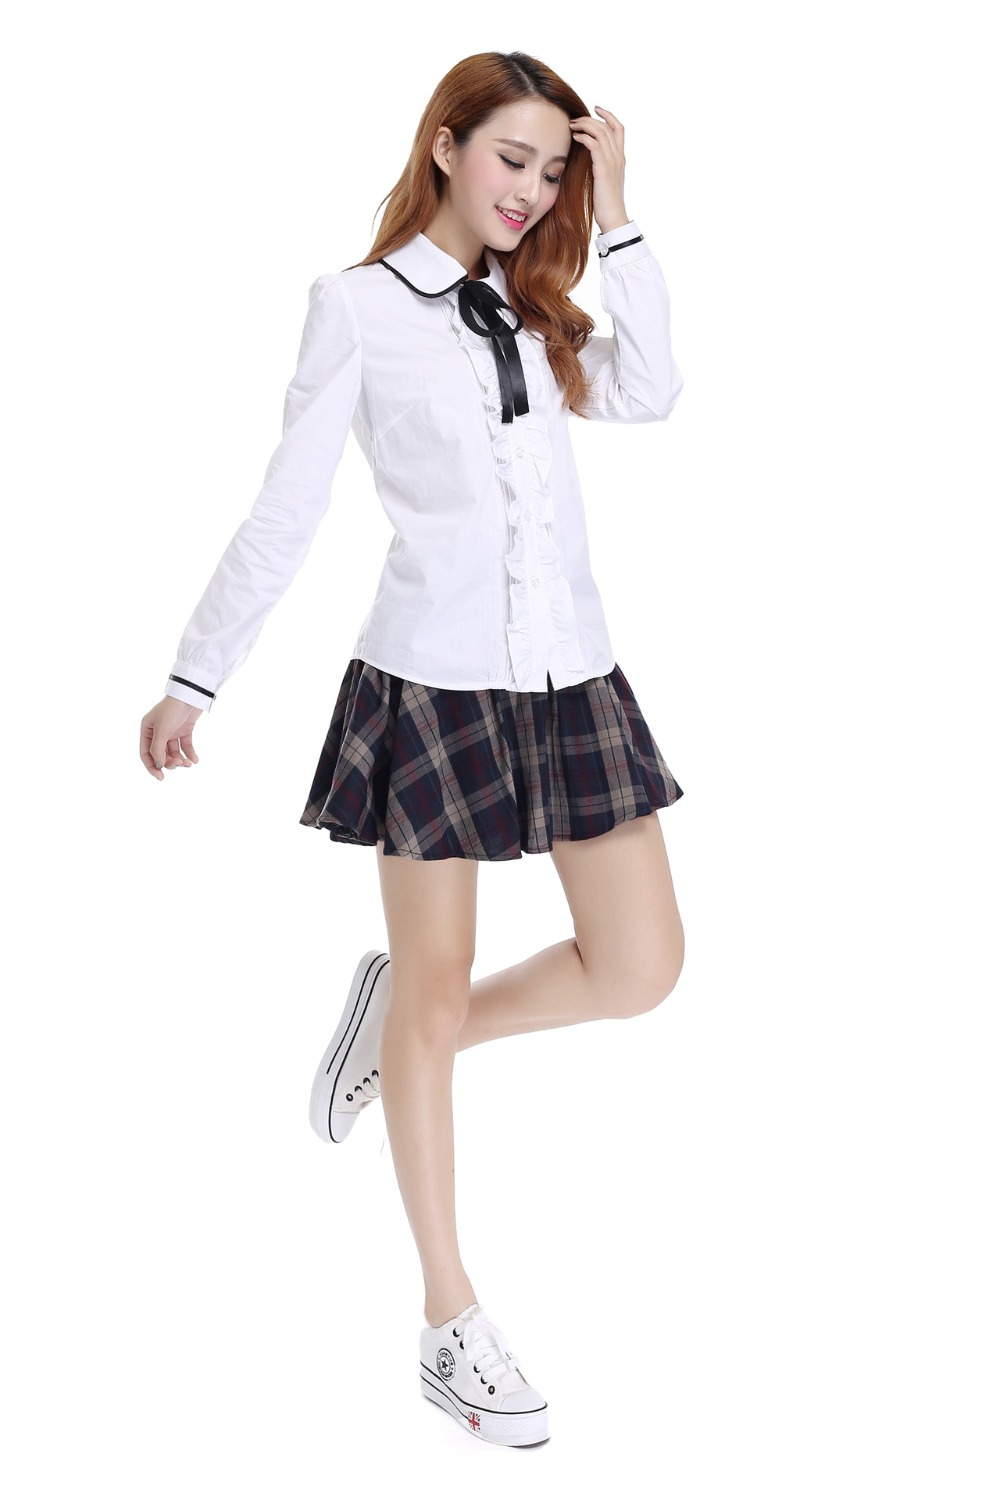 Sexy Plus Size Lingerie XXL Role Play Sex Dress Babydoll School Girl Erotic Costumes Sexy Cosplay Student Lingerie Women